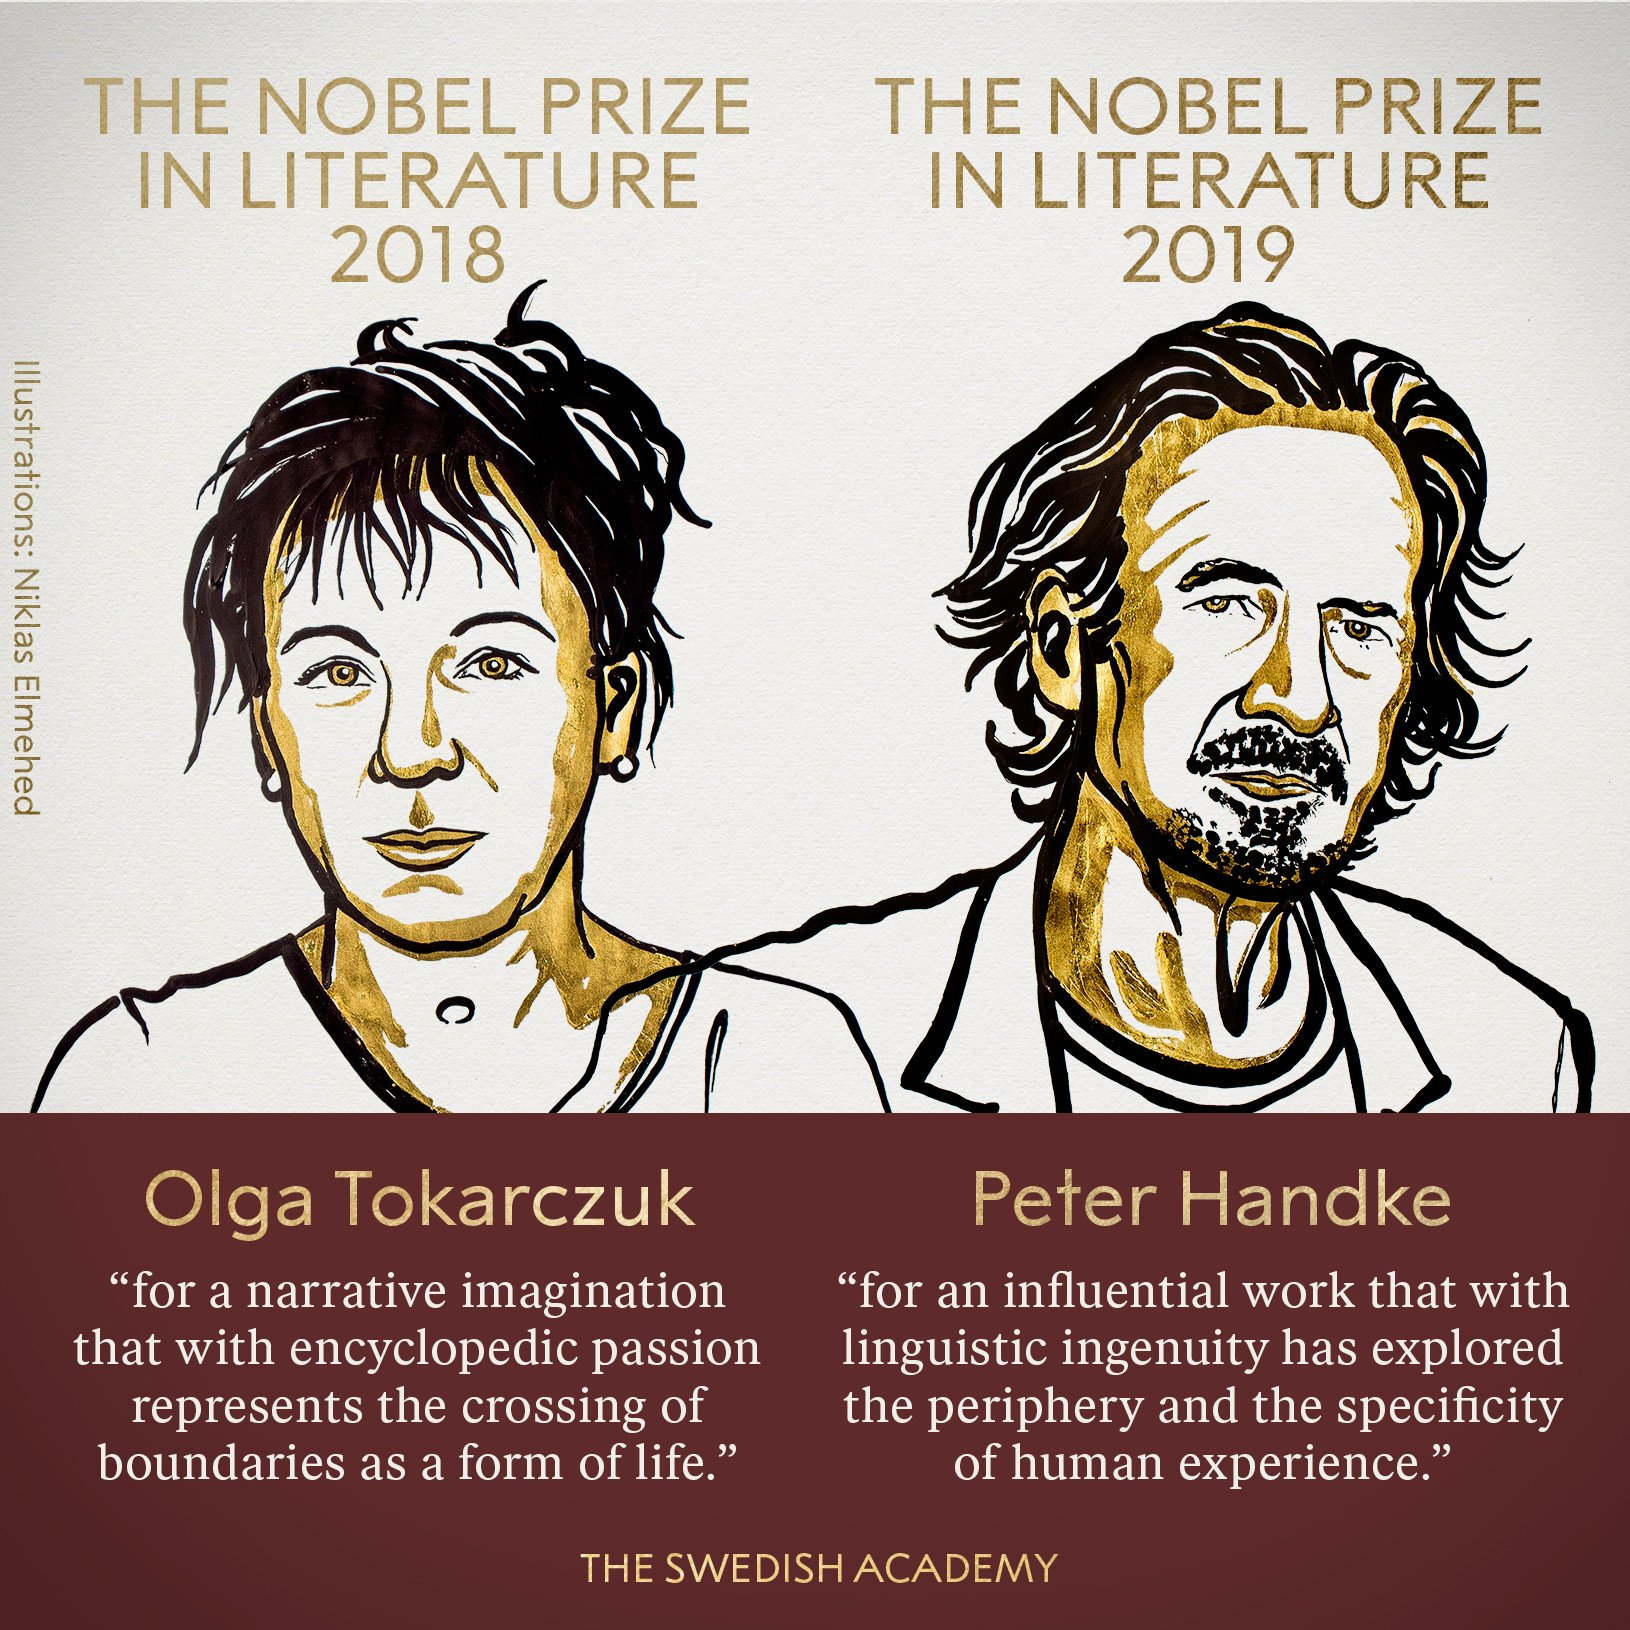 The Nobel Prize on Twitter